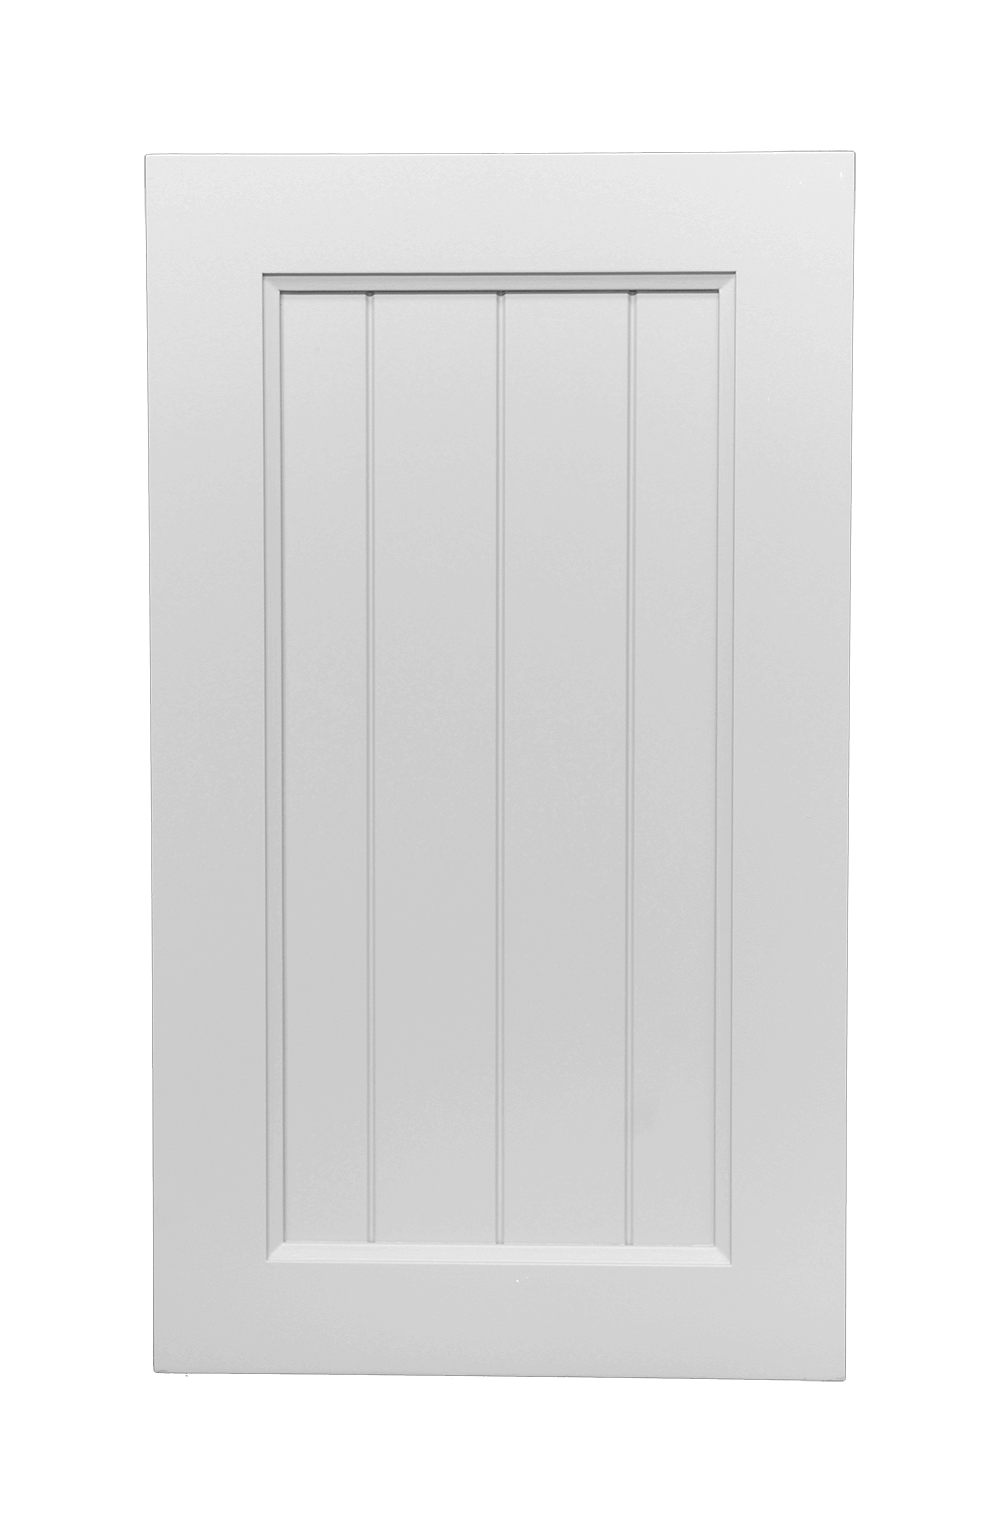 New Country Kitchen Cabinet Doors Jmf Doors